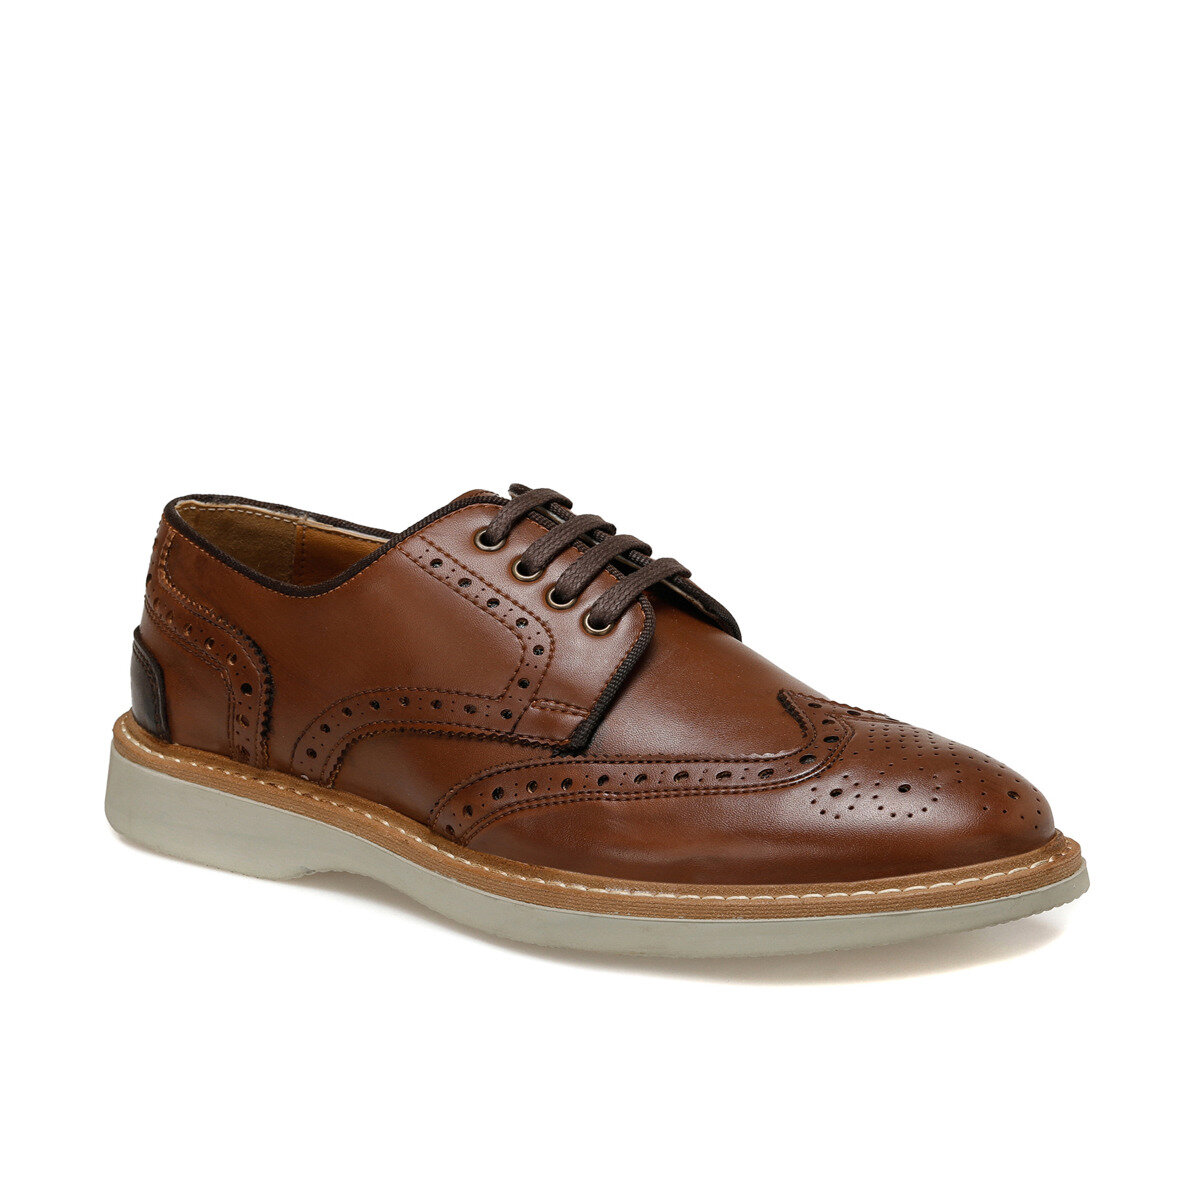 FLO 8017-3 Brown Men 'S Classic Shoes-Styles